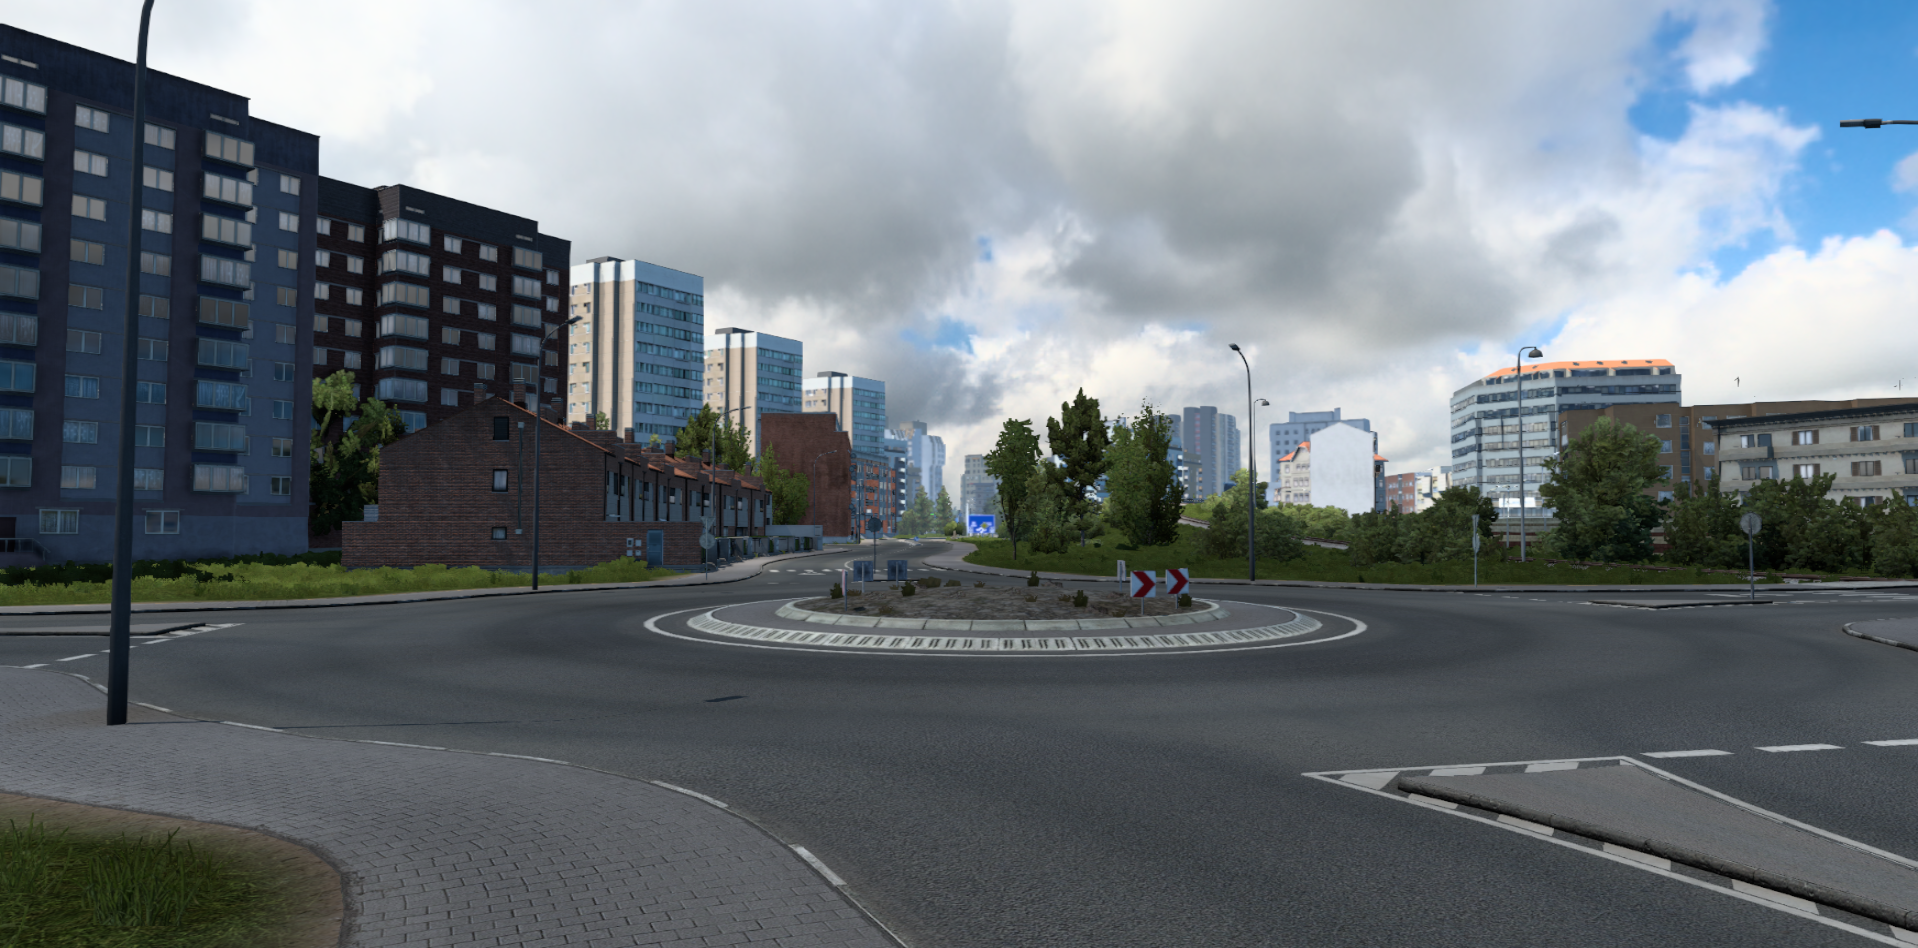 ets2_20211007_202854_00.png